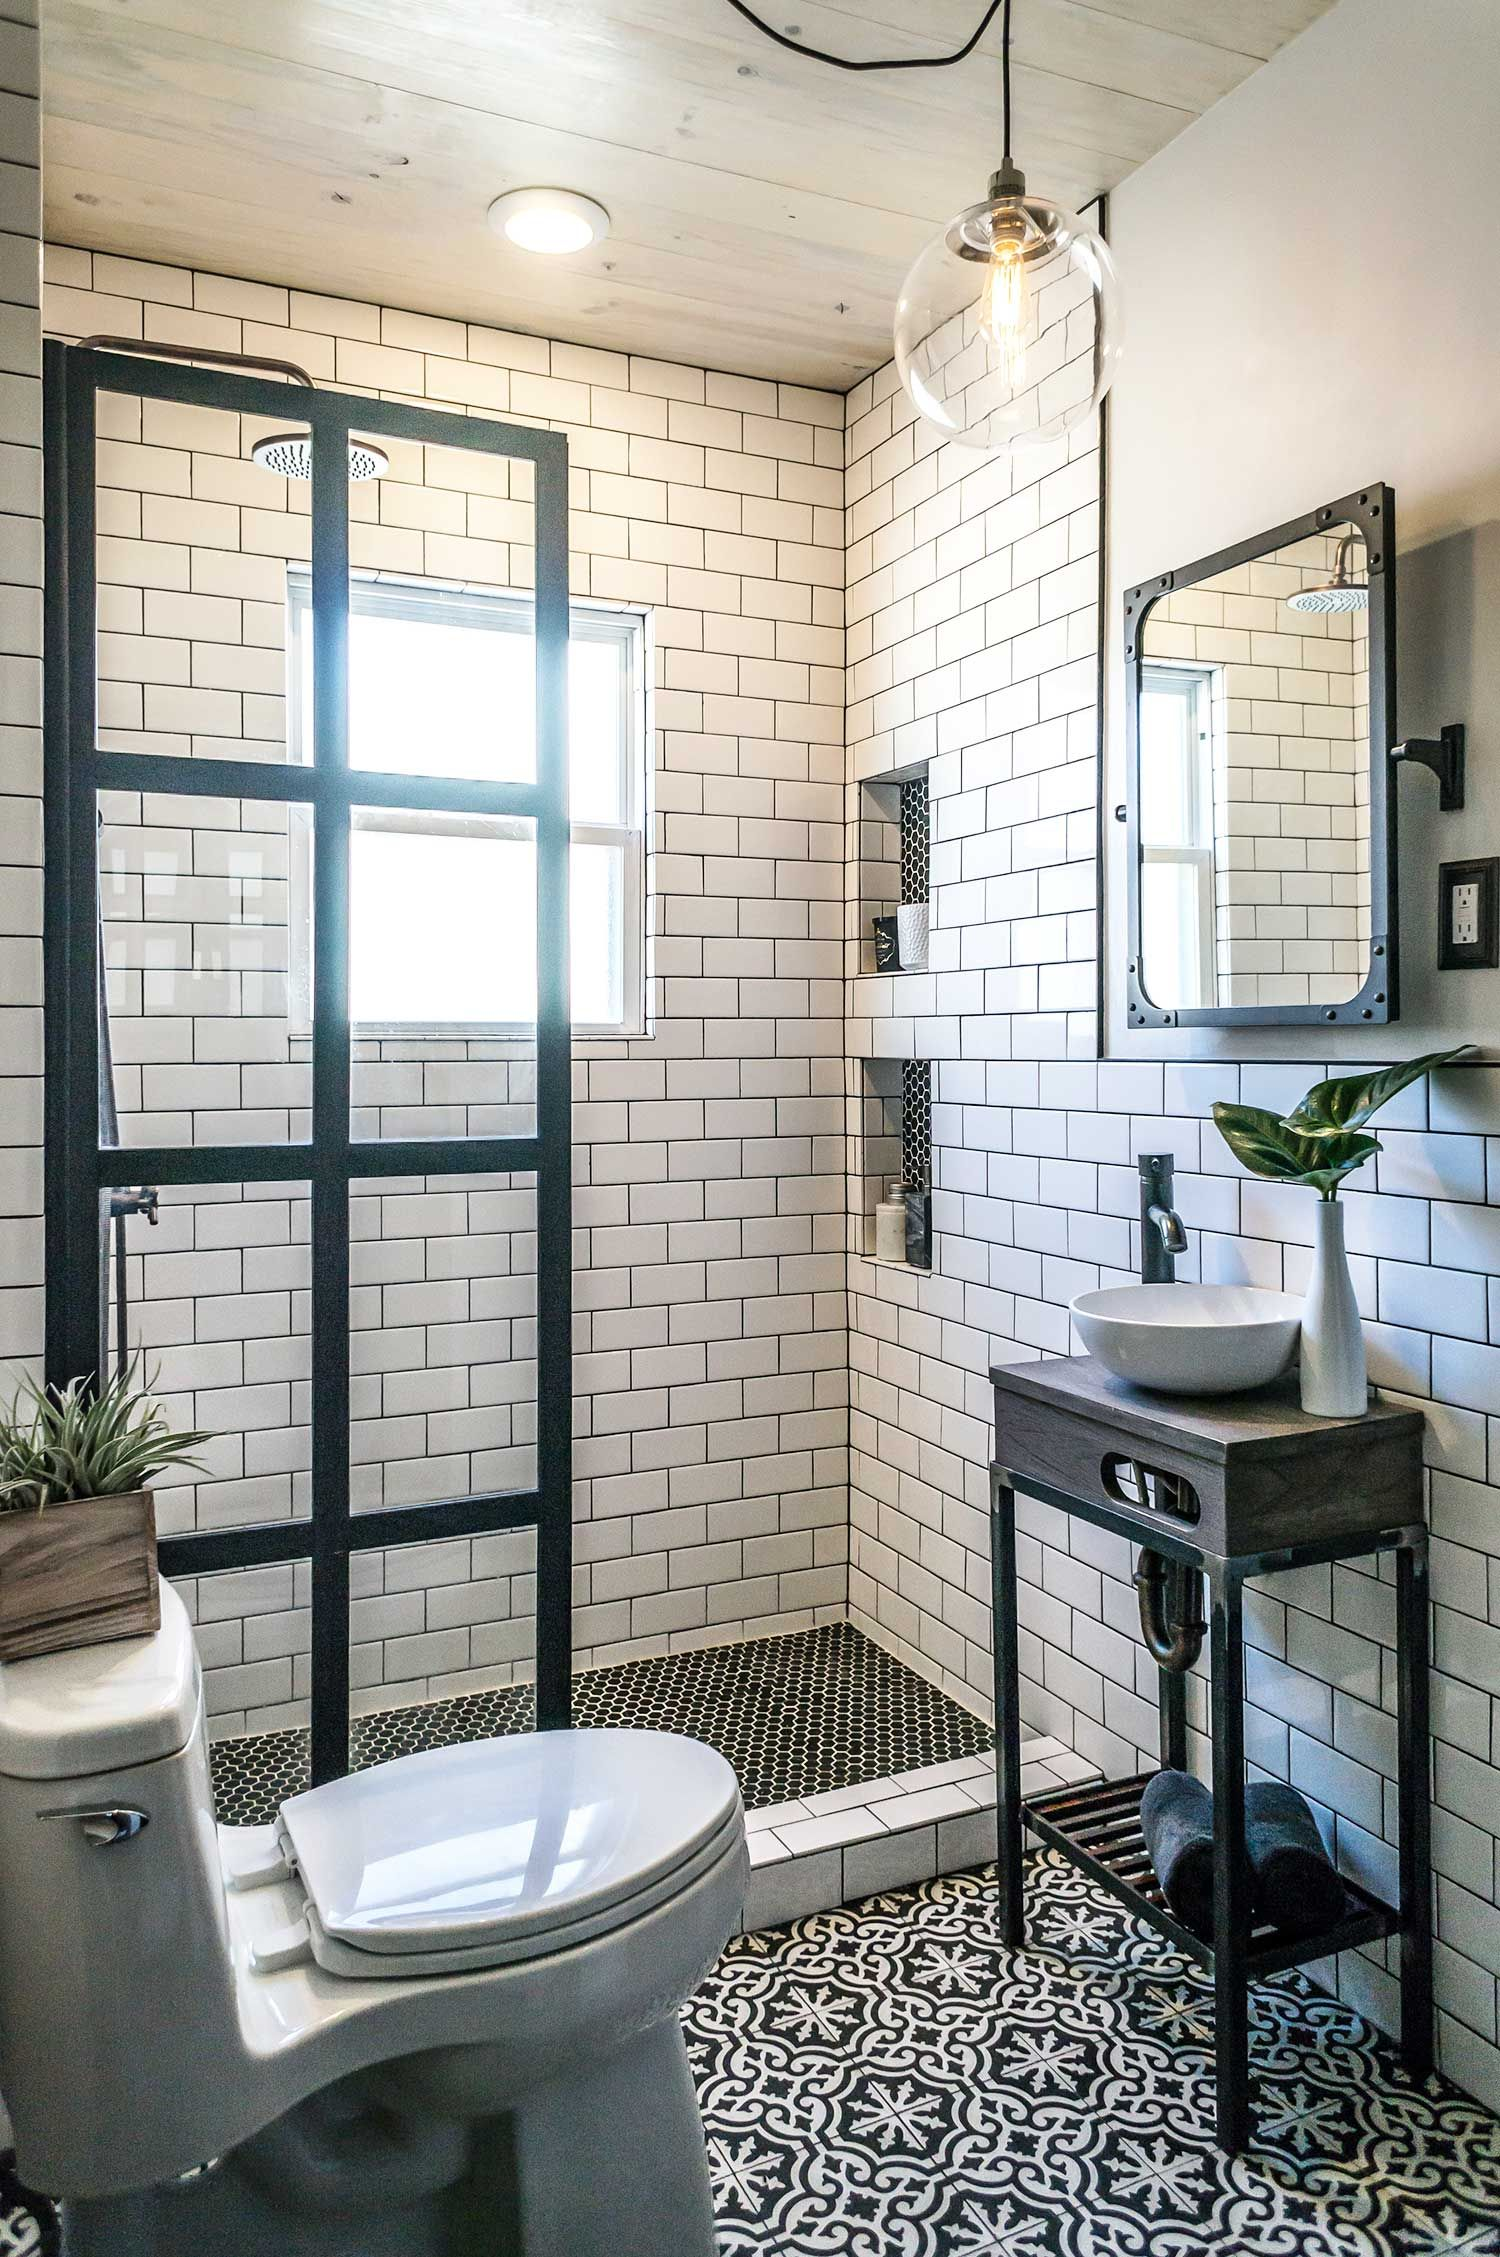 Bathroom Tiles Renovation form meets function in an impressive bathroom renovation | rue